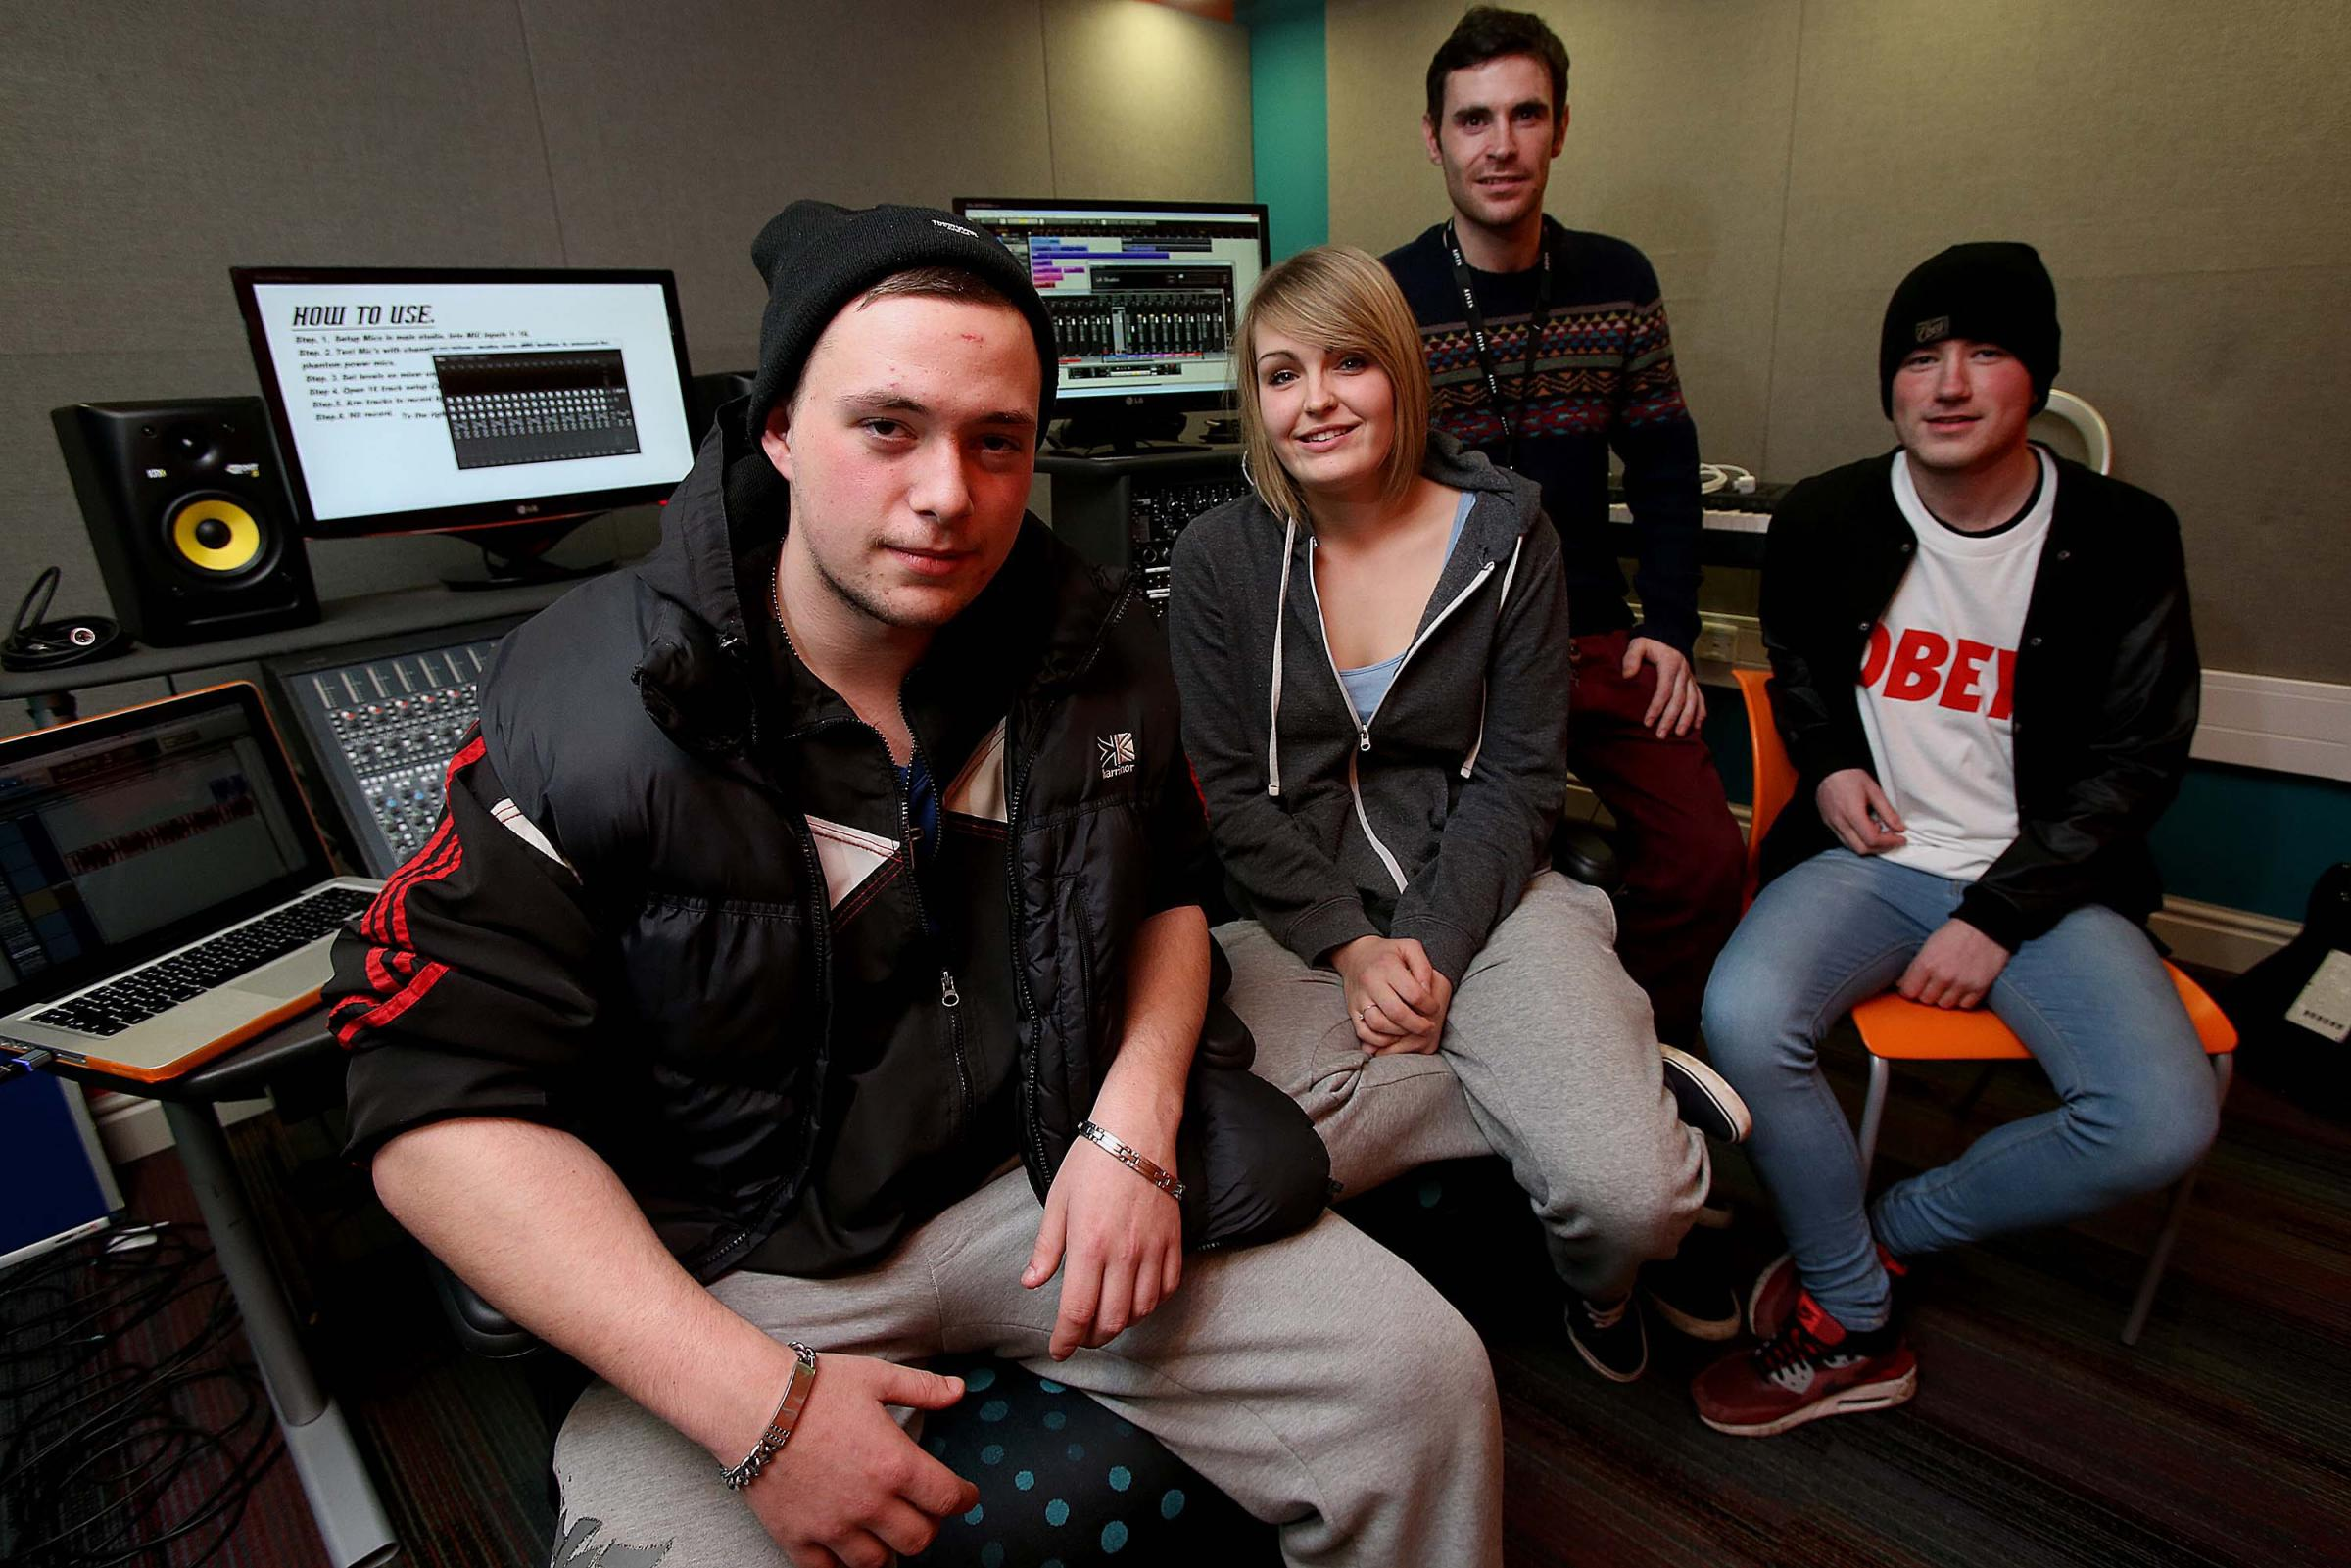 Freestyle rapper Adam Skidmore (left) during recording at Myplace Youth Centre in Middlesbrough with fellow vocalist and producer Jenny Dixon, and Ethan Covell (vocalist, righ